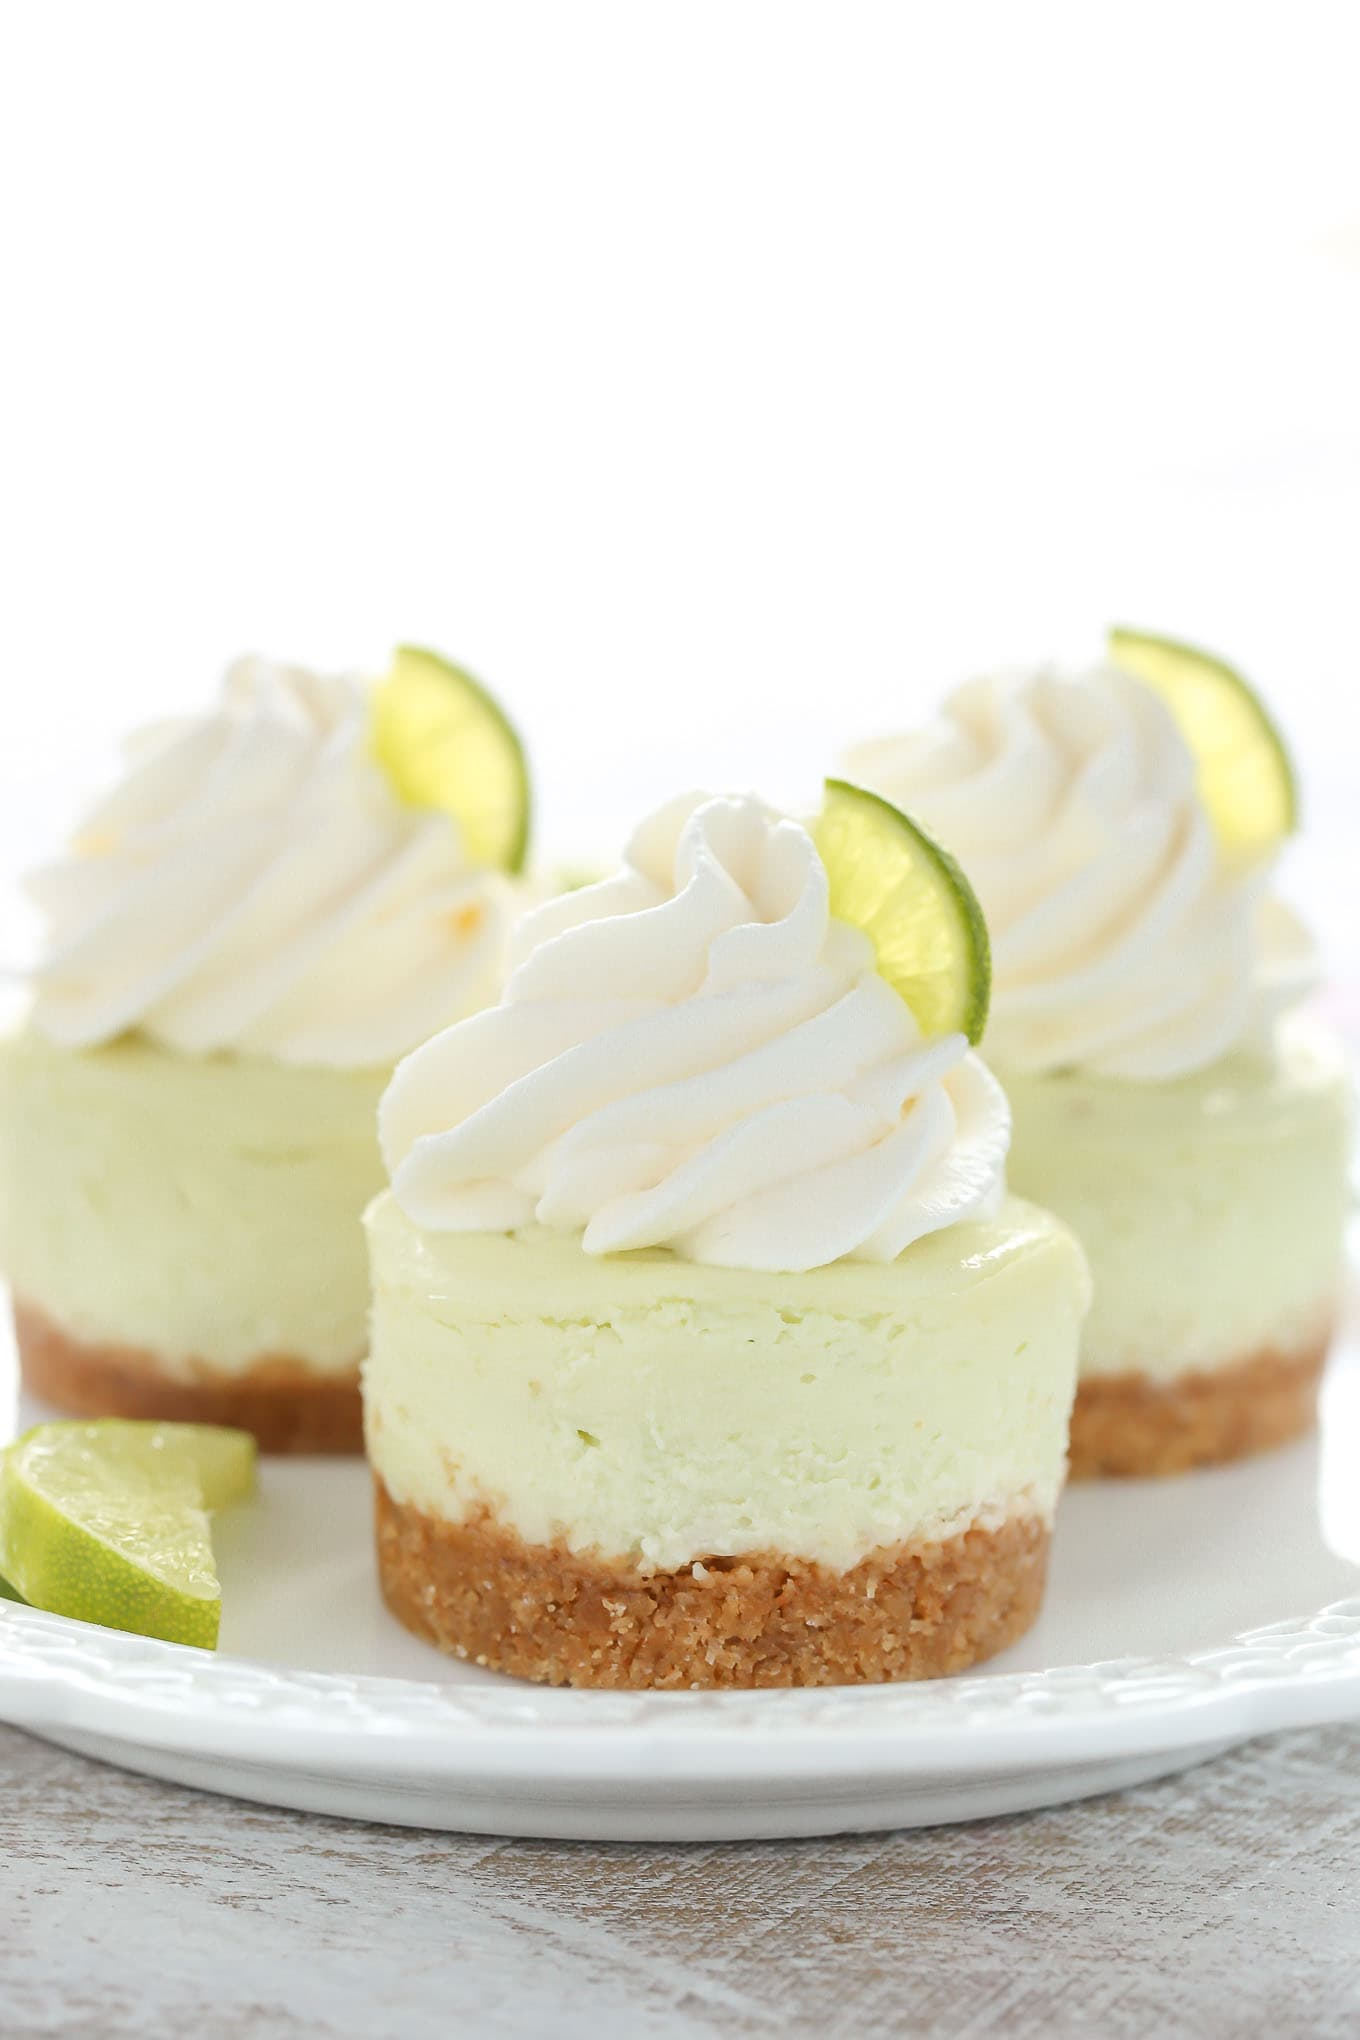 These Mini Key Lime Cheesecakes feature an easy homemade graham cracker crust topped with a smooth and creamy key lime cheesecake filling. The perfect dessert for any time of year!